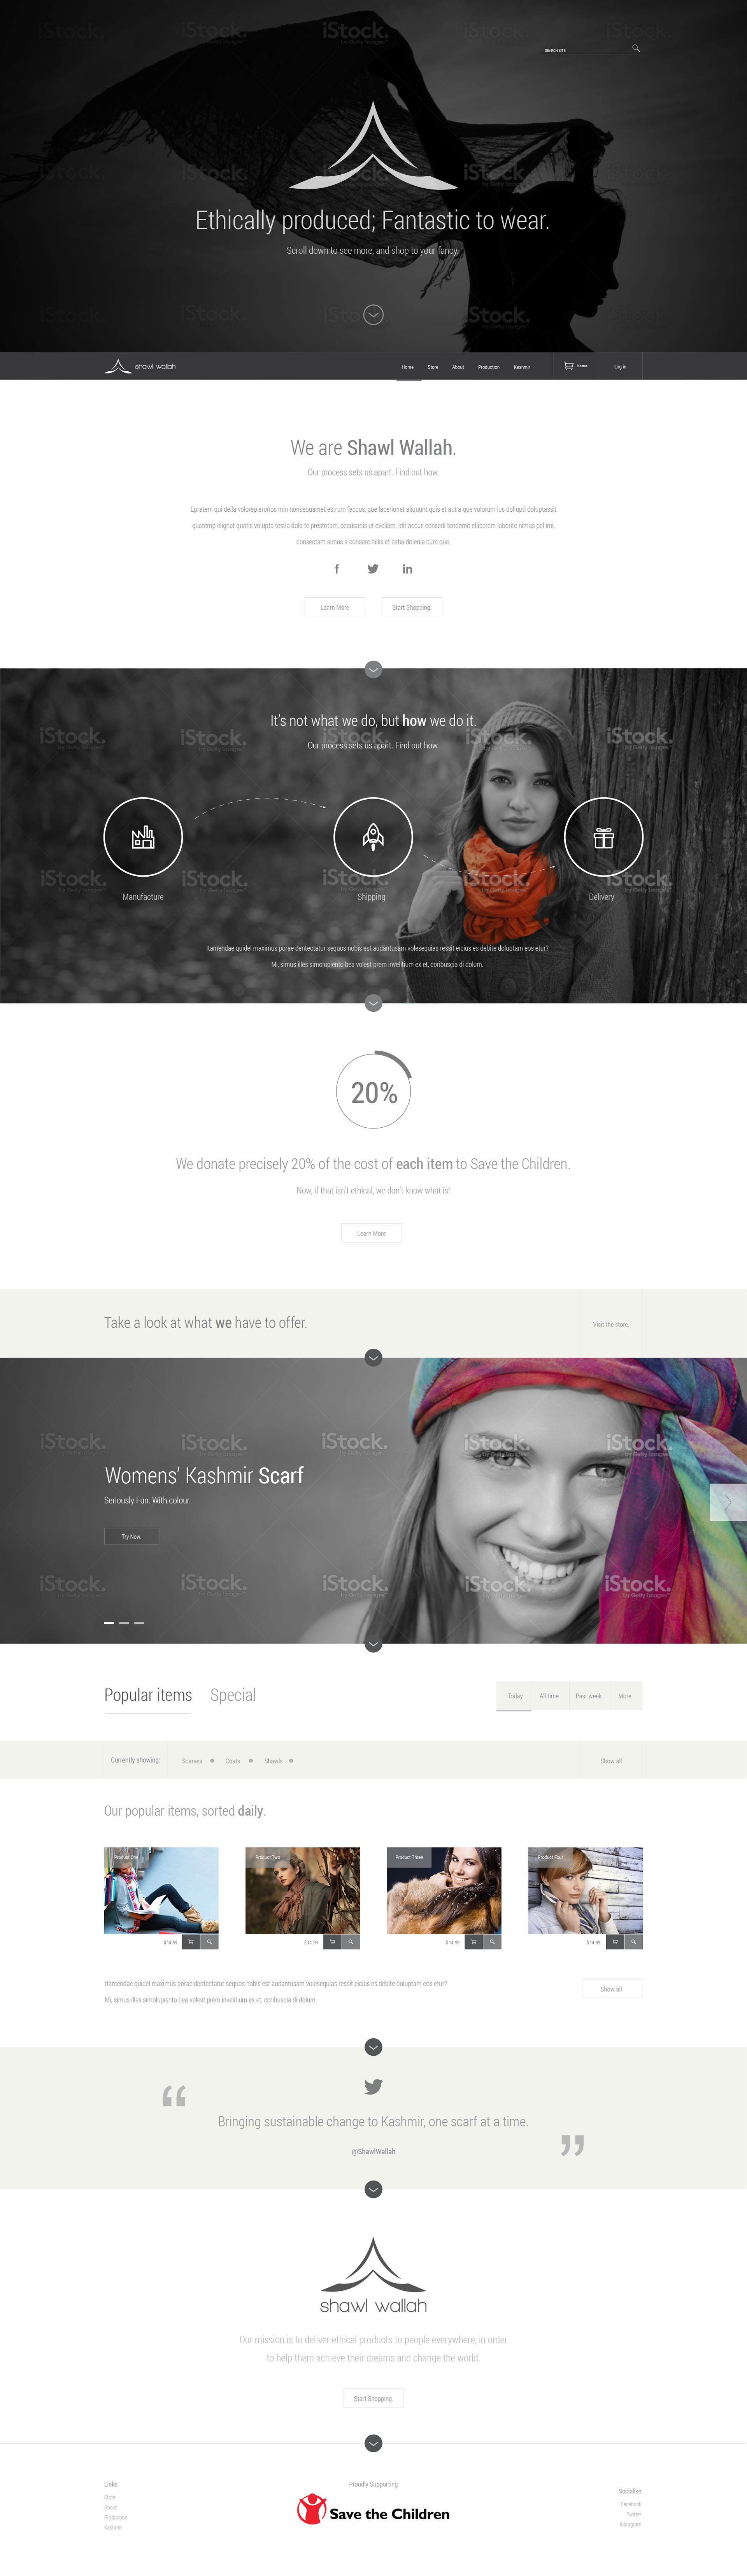 Website Creation for Sustainable Fashion Line